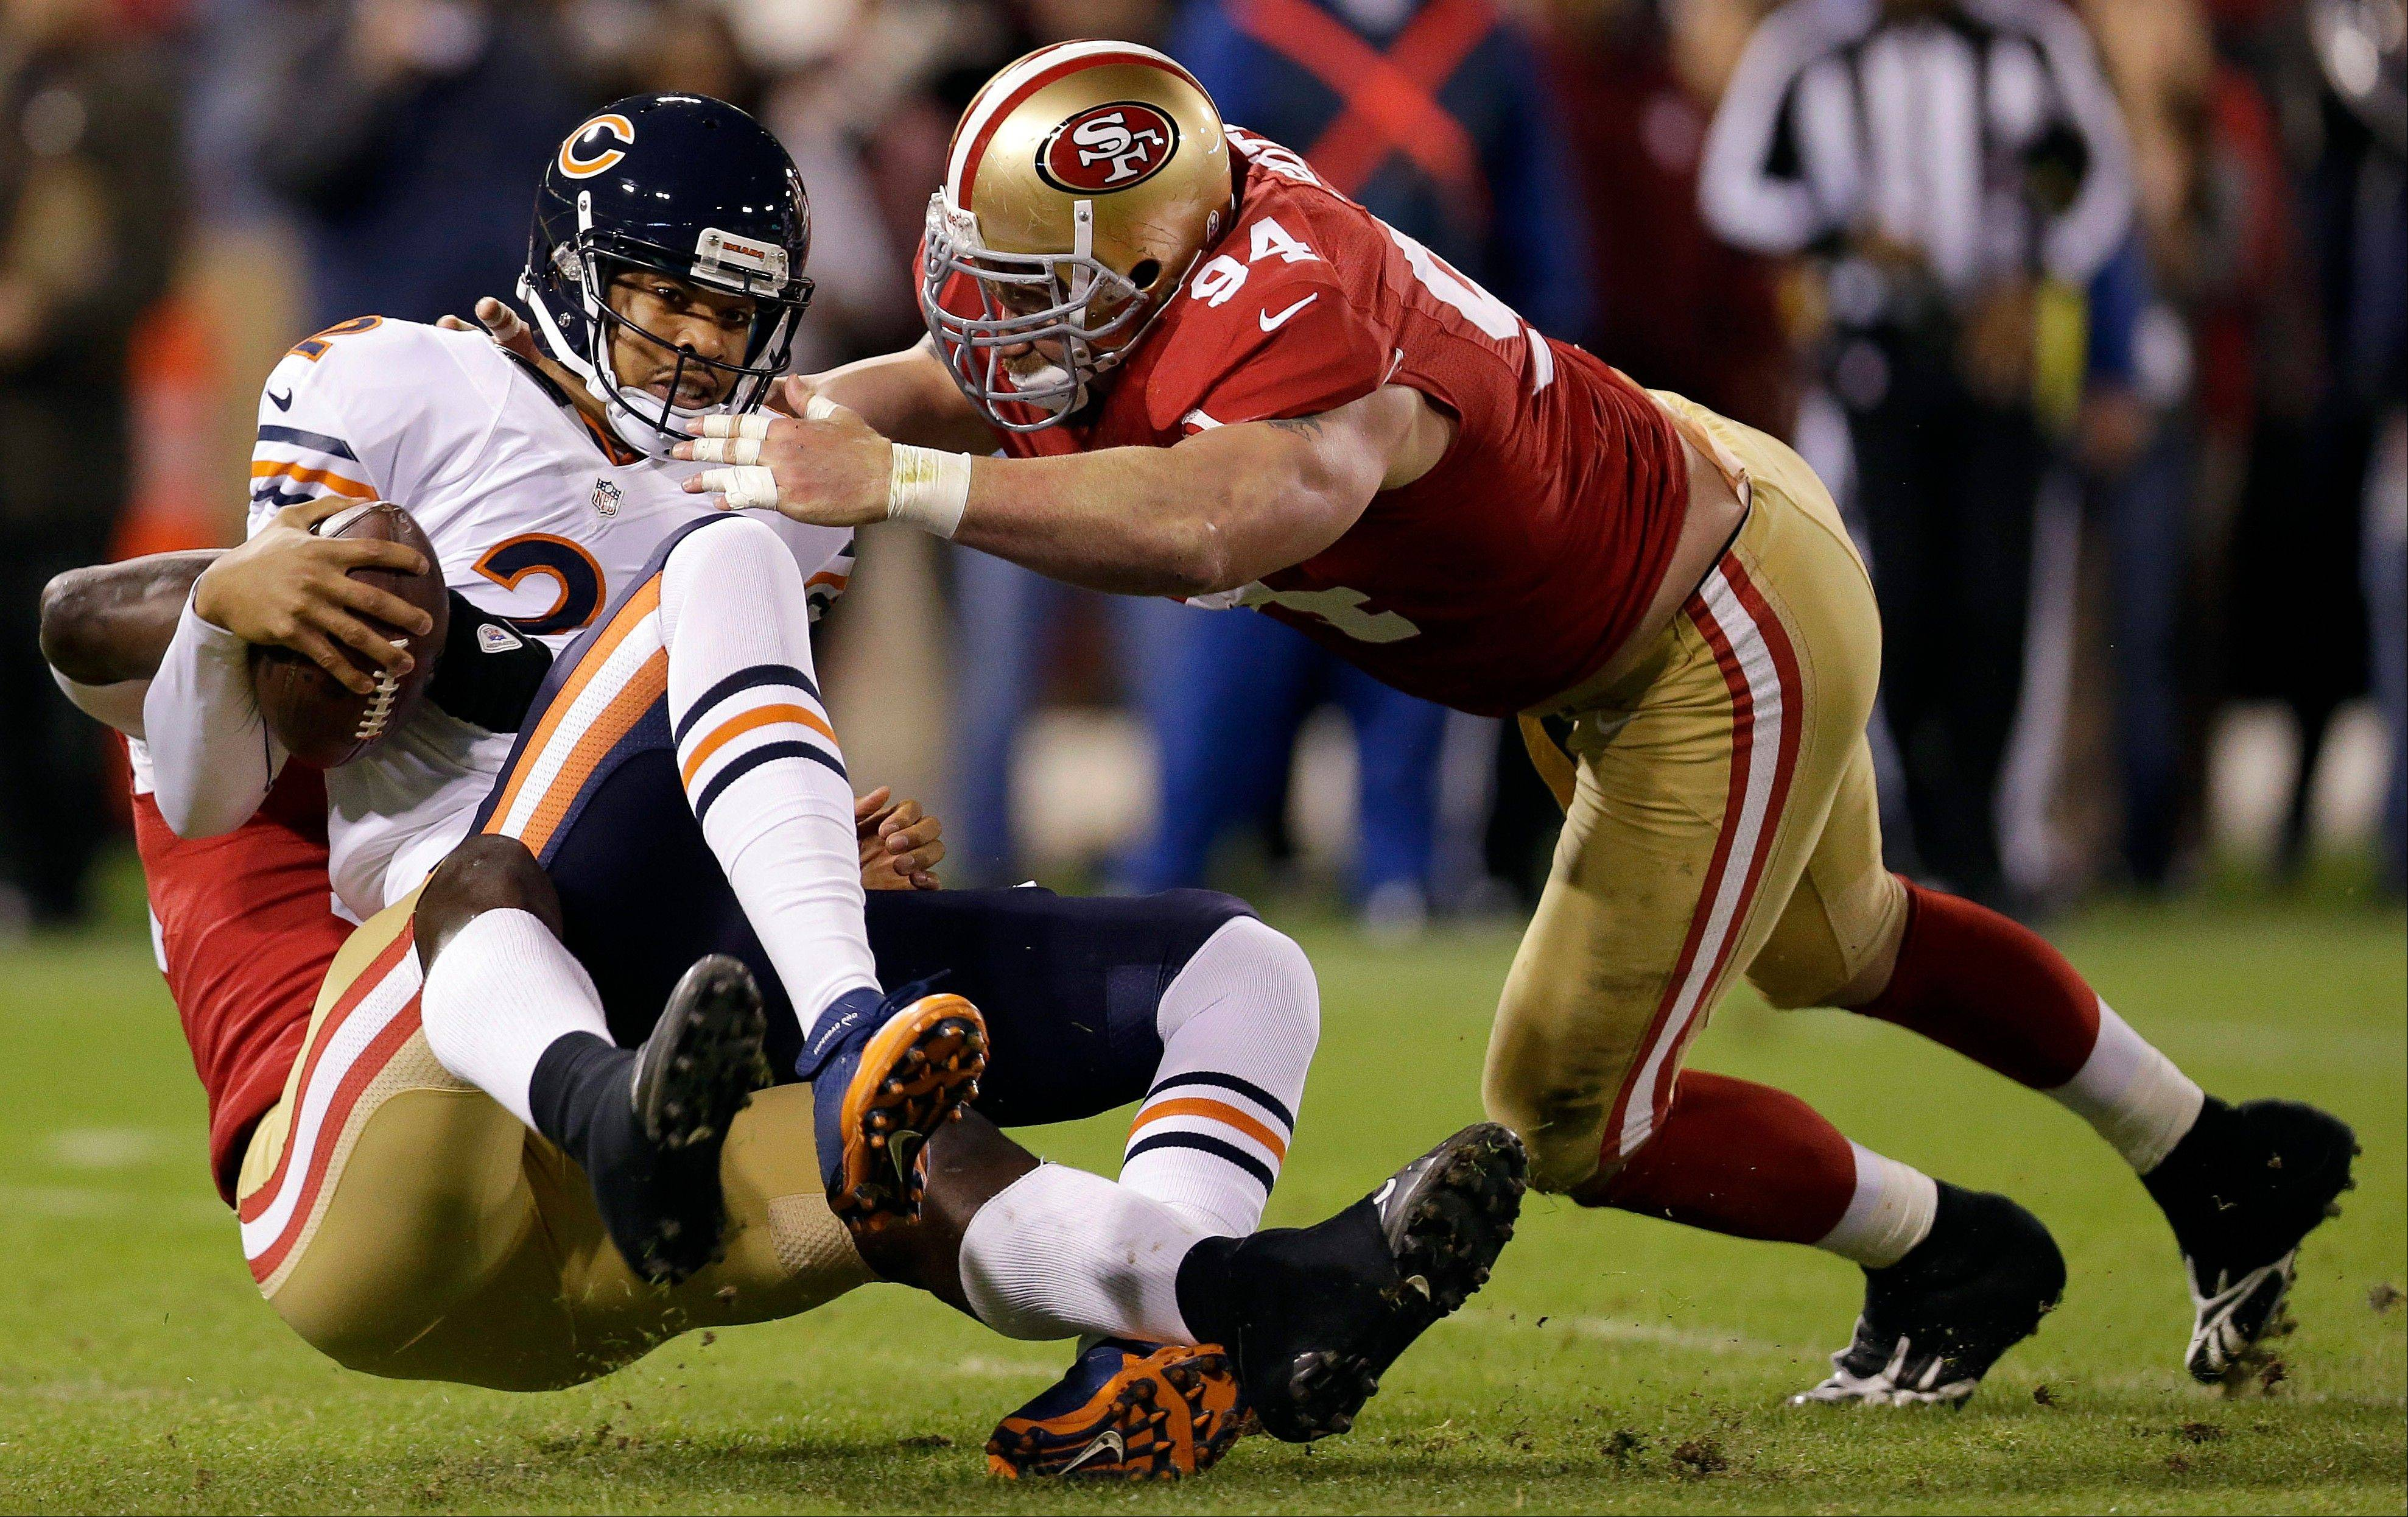 Bears quarterback Jason Campbell is sacked by San Francisco 49ers linebacker Aldon Smith, left, as defensive tackle Justin Smith converges Monday during the first quarter in San Francisco.